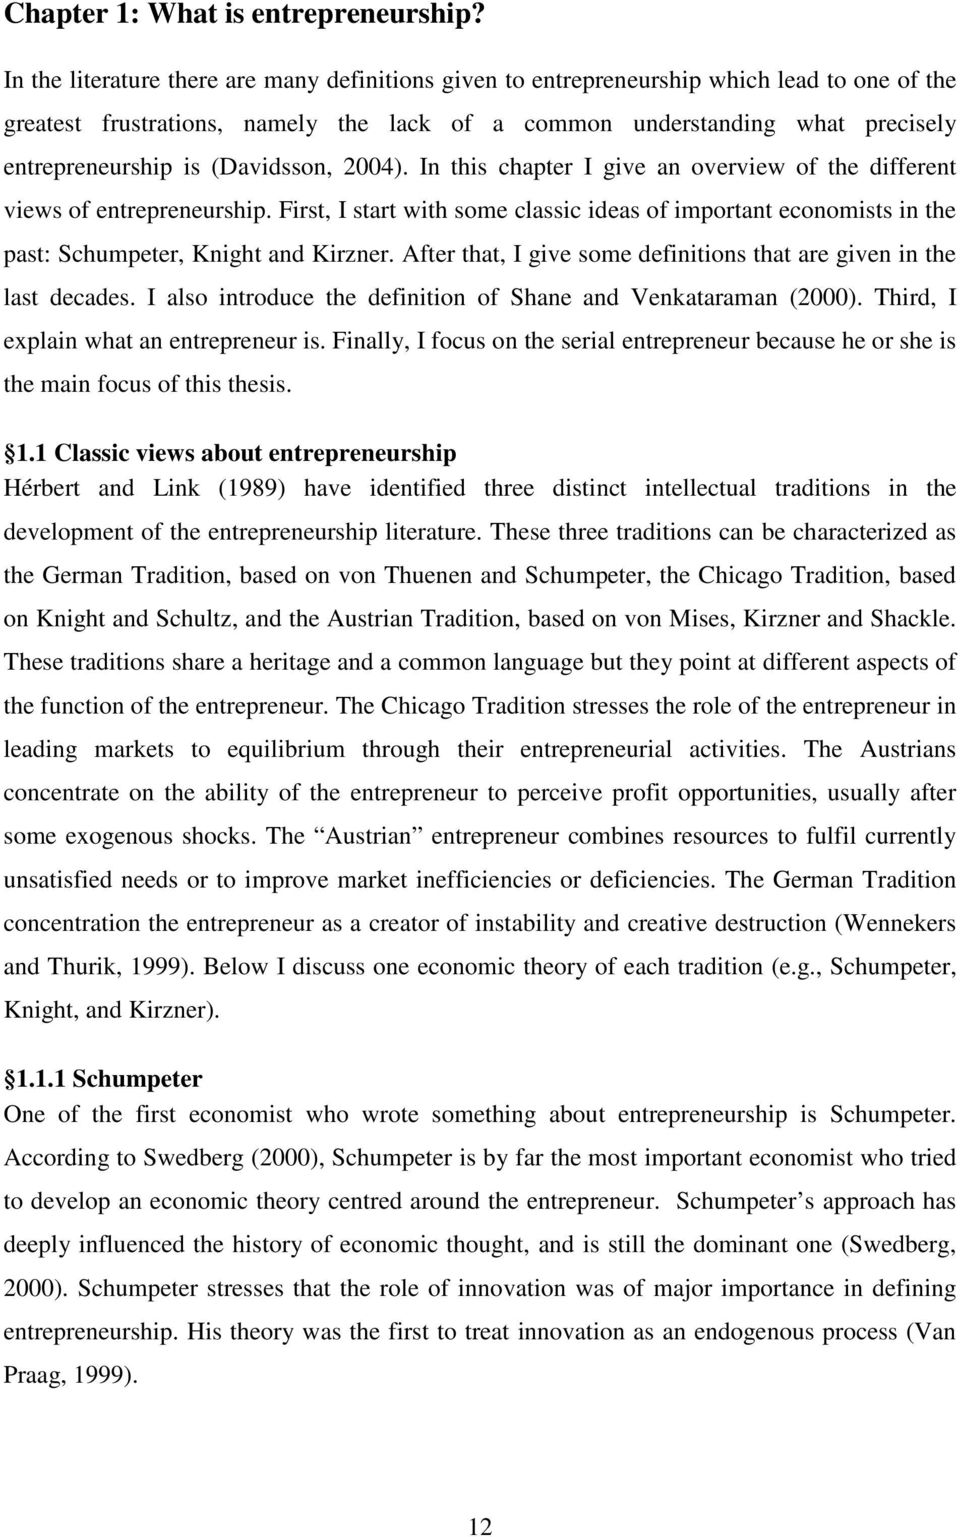 schumpeter's plea historical approaches to entrepreneurship Nary approaches dominated entrepreneurship research  by schumpeter's  plea to employ more elaborate historical methods in the study of.